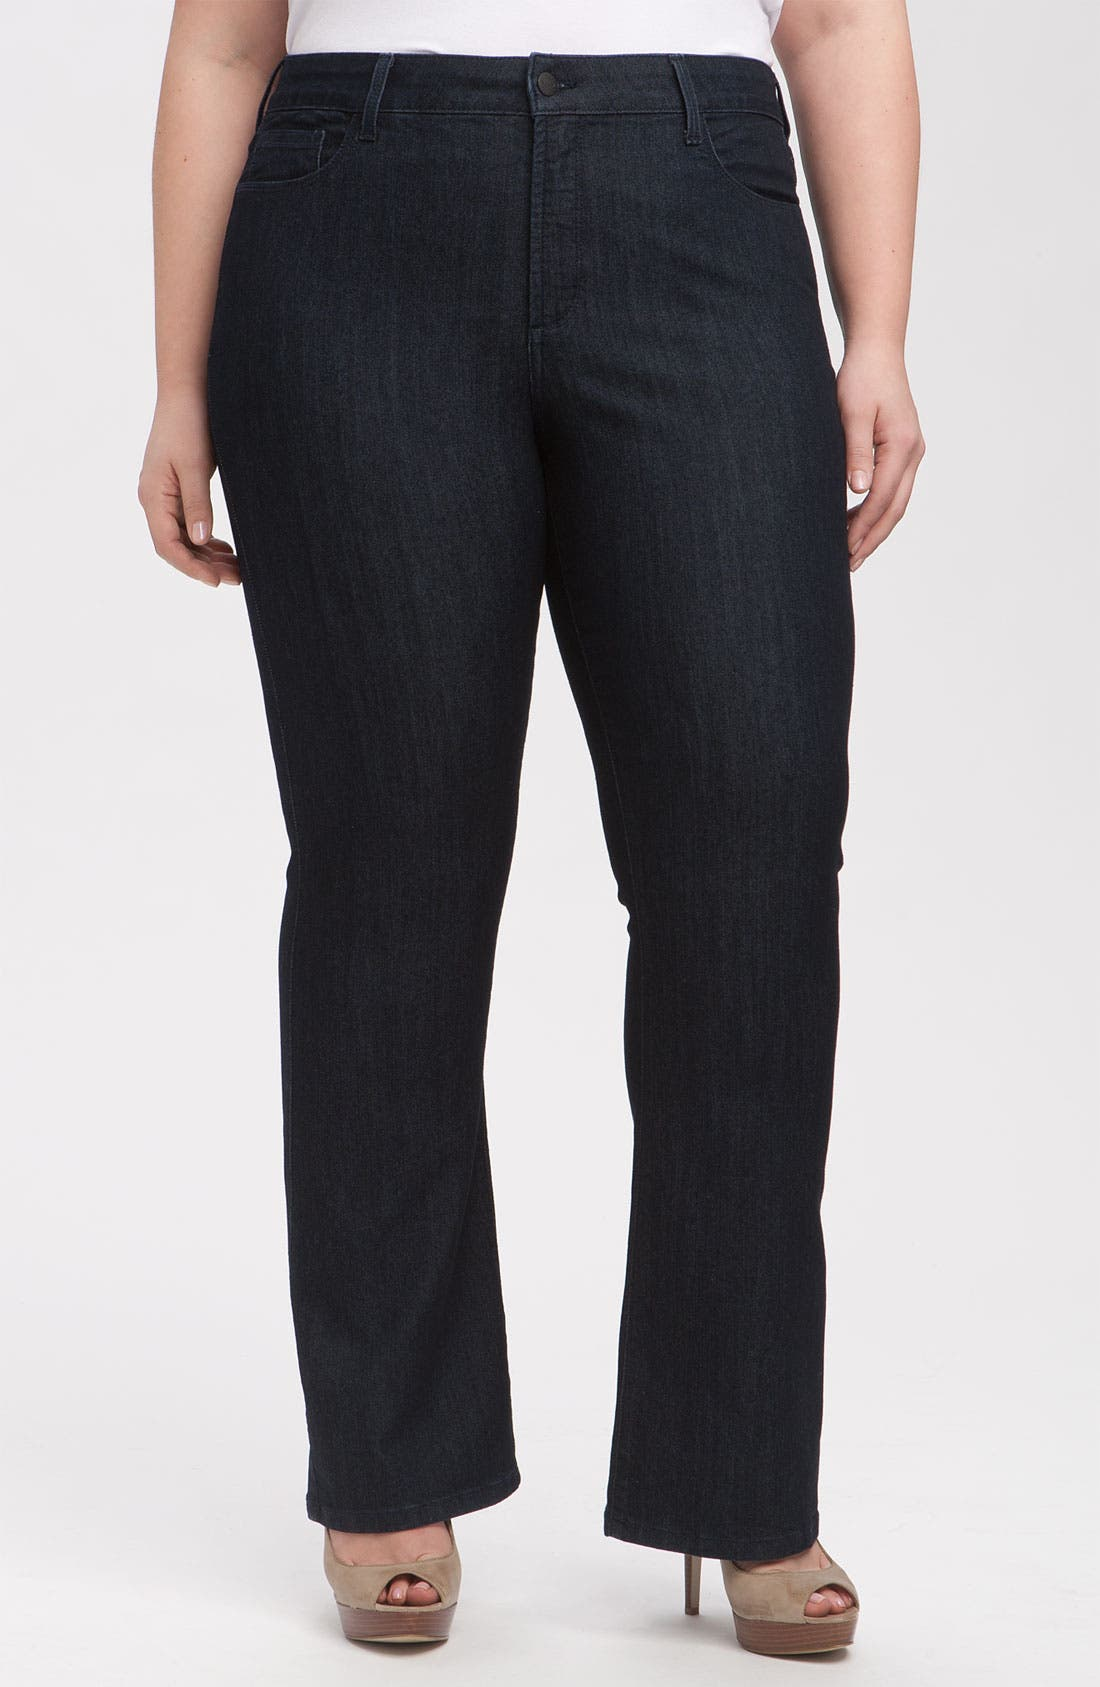 Alternate Image 1 Selected - NYDJ 'Barbara' Stretch Bootcut Jeans (Dark Enzyme) (Plus Size)